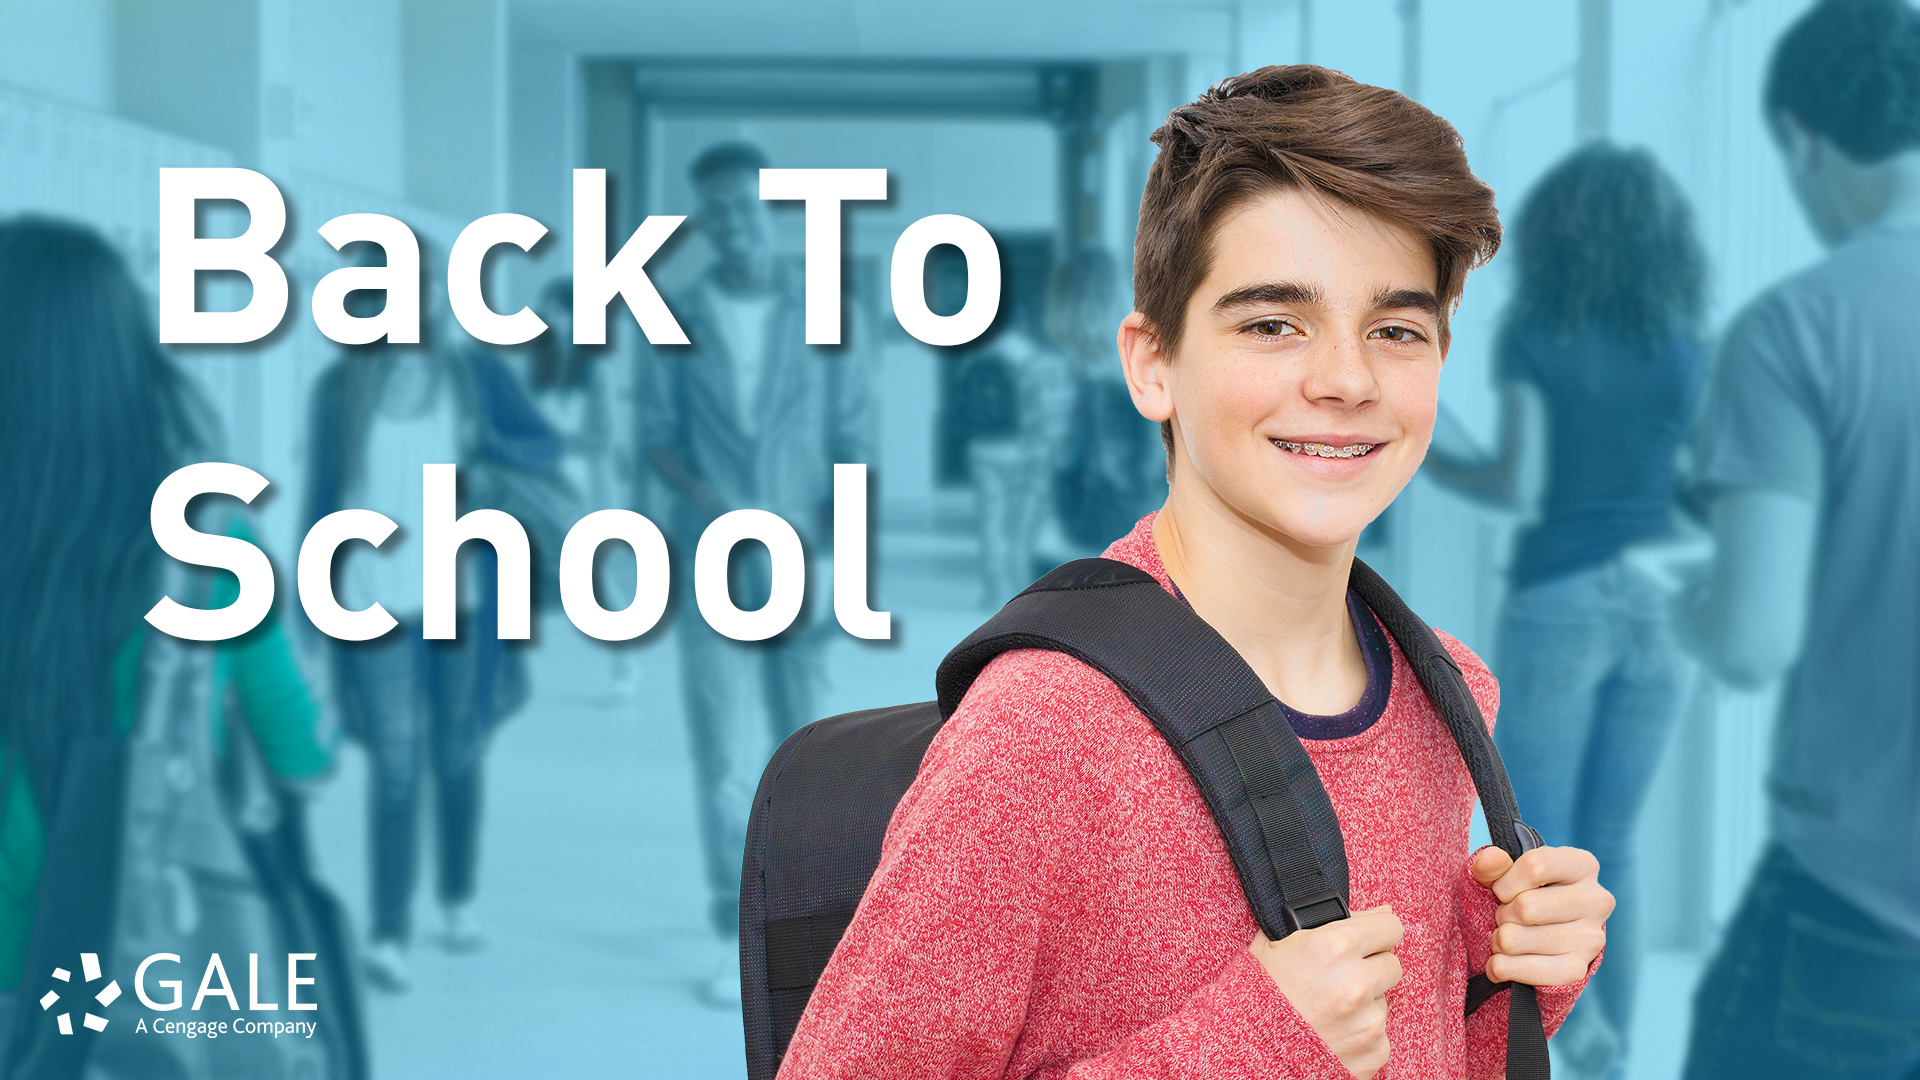 Back To School with NCLive Thumbnail